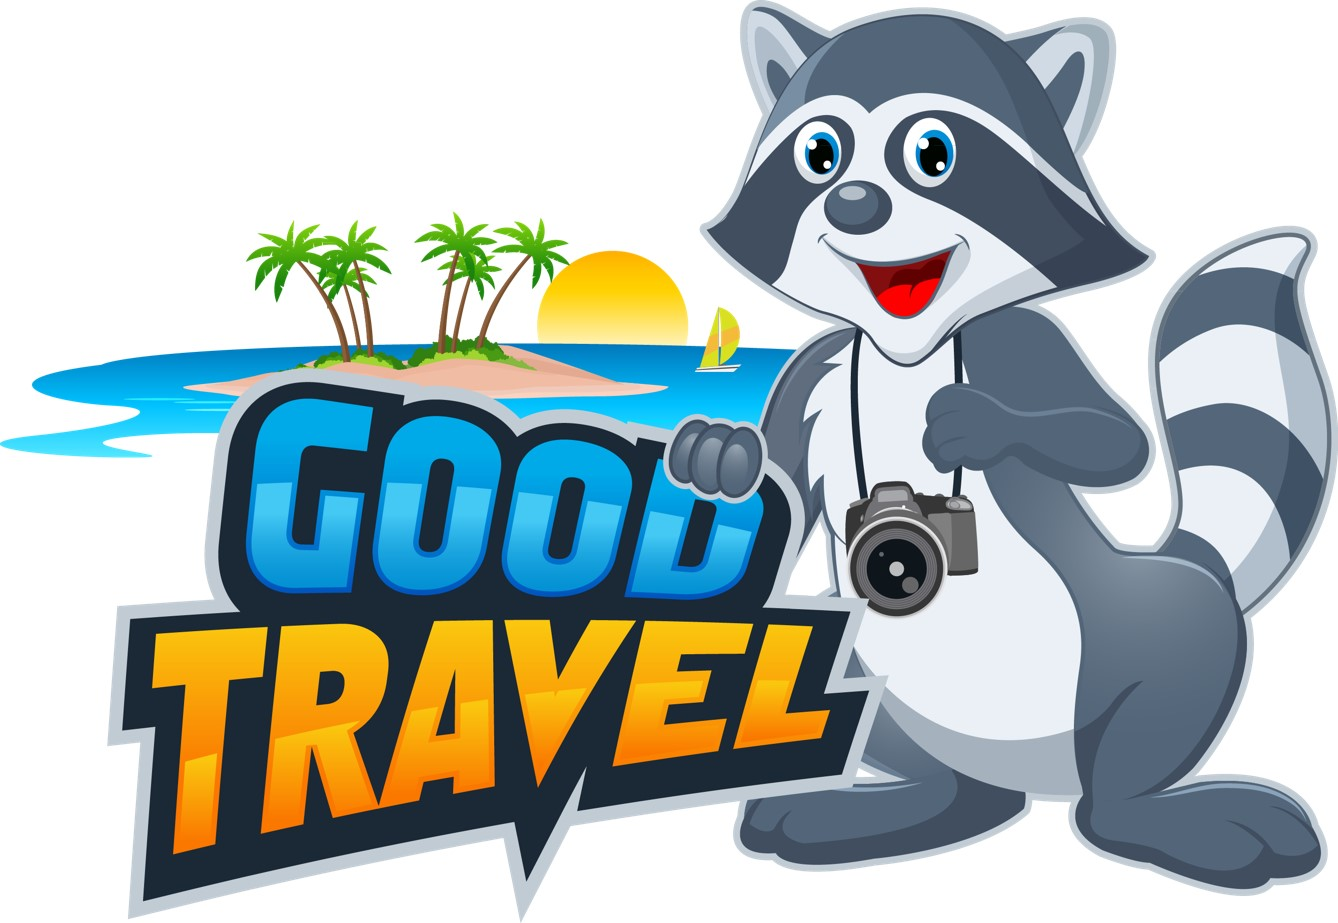 Good Travel México